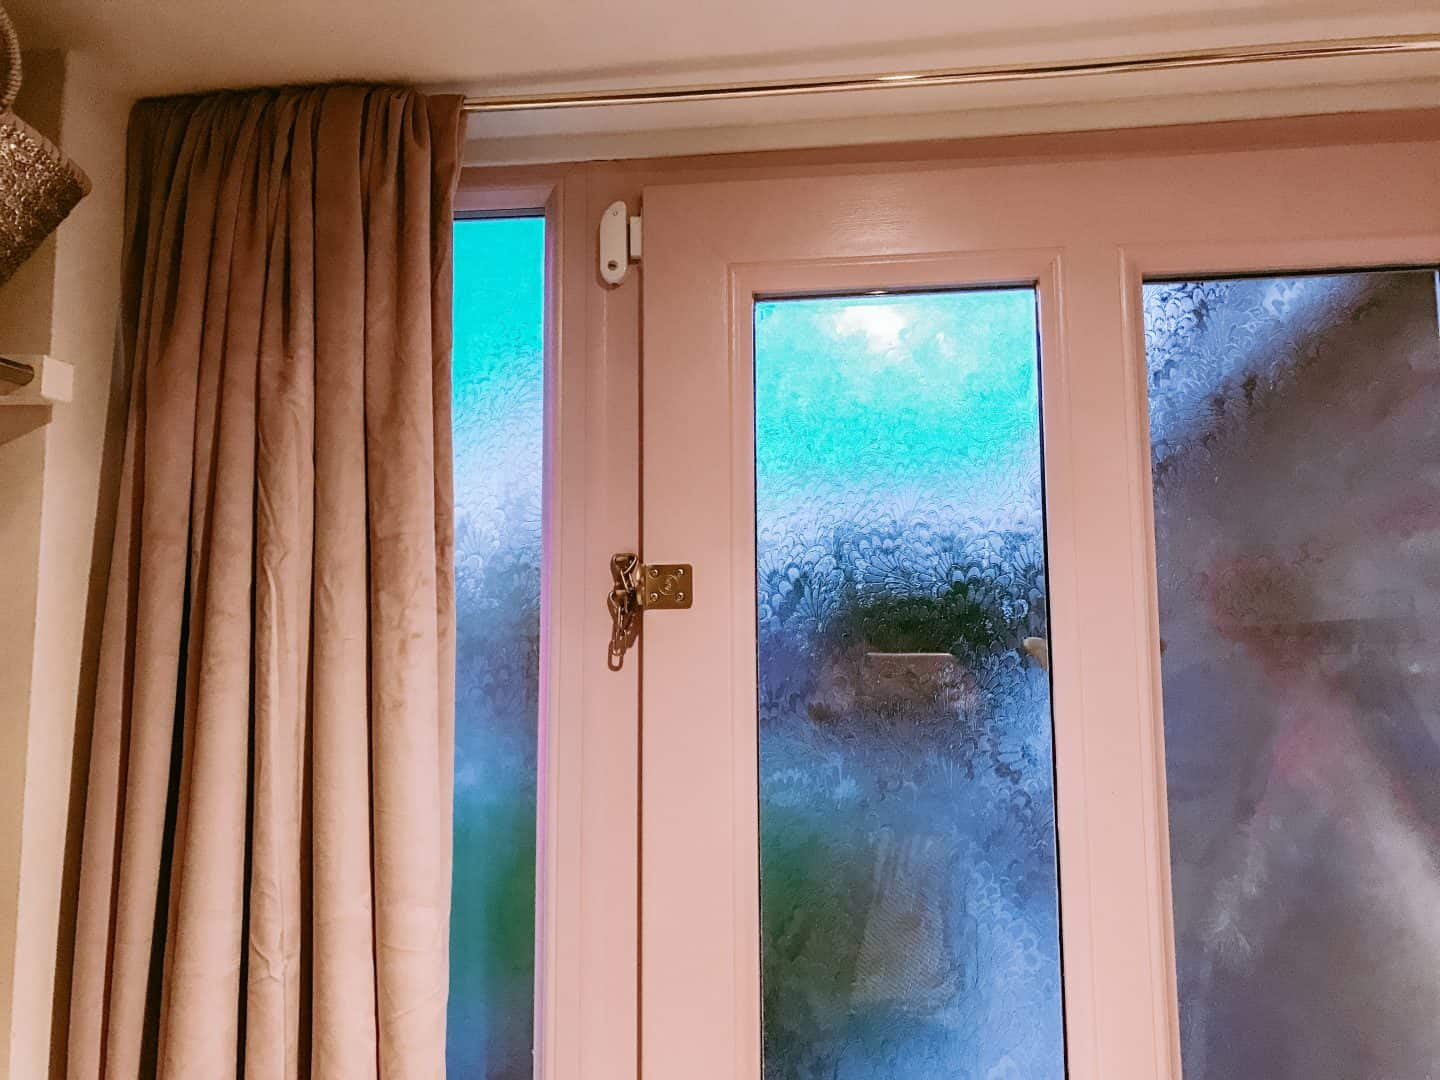 Make a draughty hallway more cosy with a velvet curtain